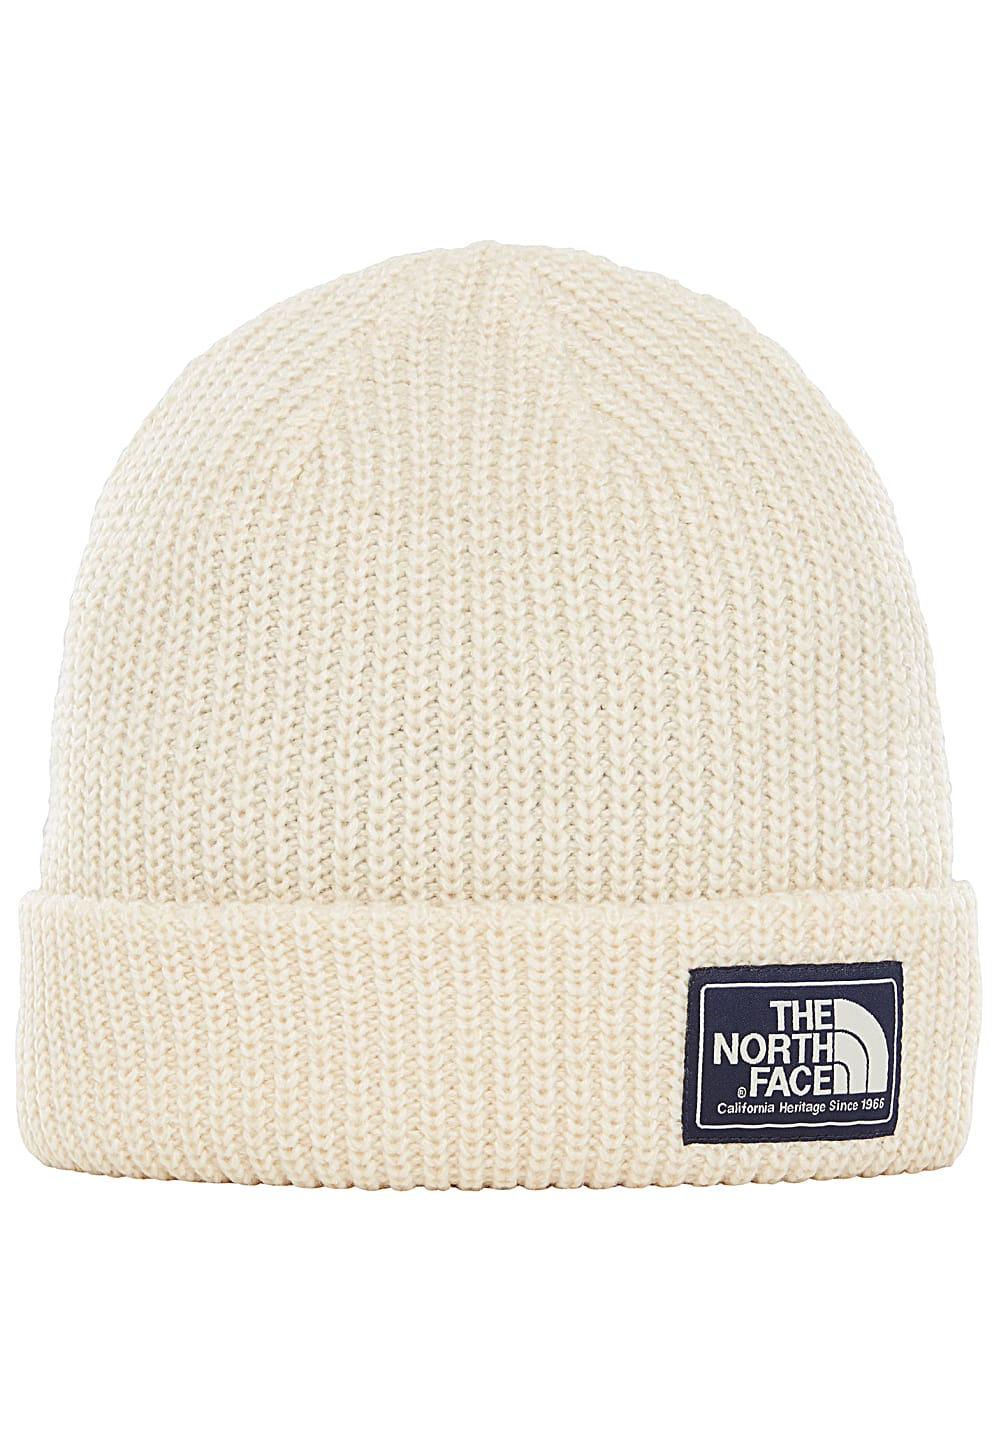 THE NORTH FACE Salty Dog , Bonnet , Blanc